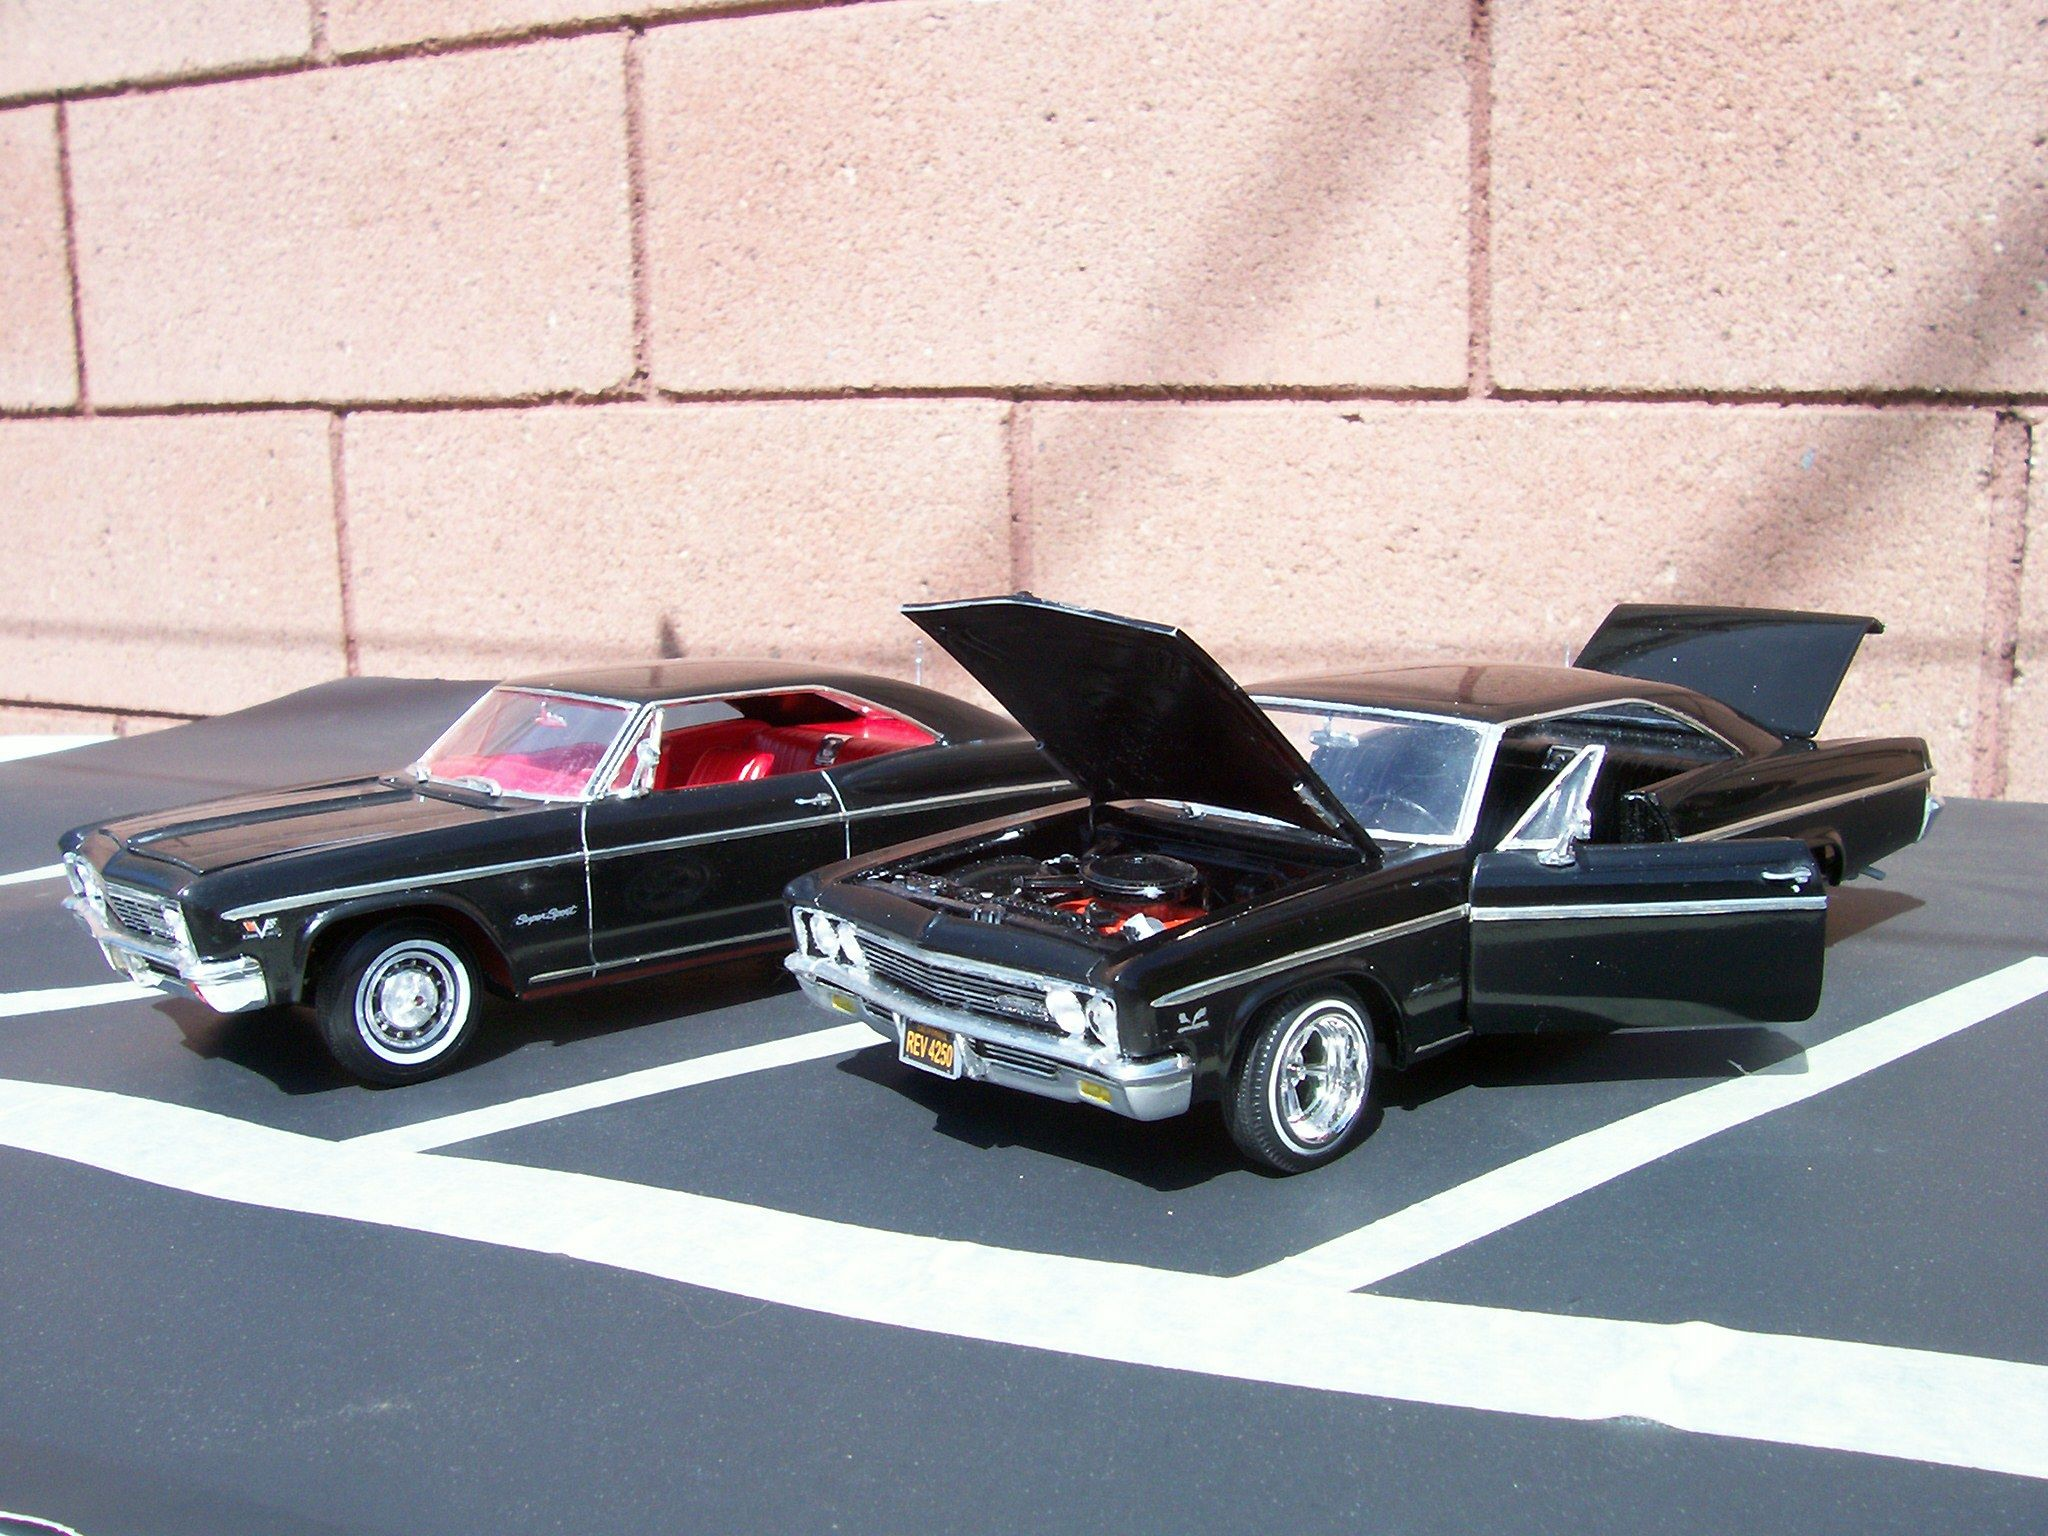 1966 chevy impala 1 25 scale model cars model cars. Black Bedroom Furniture Sets. Home Design Ideas